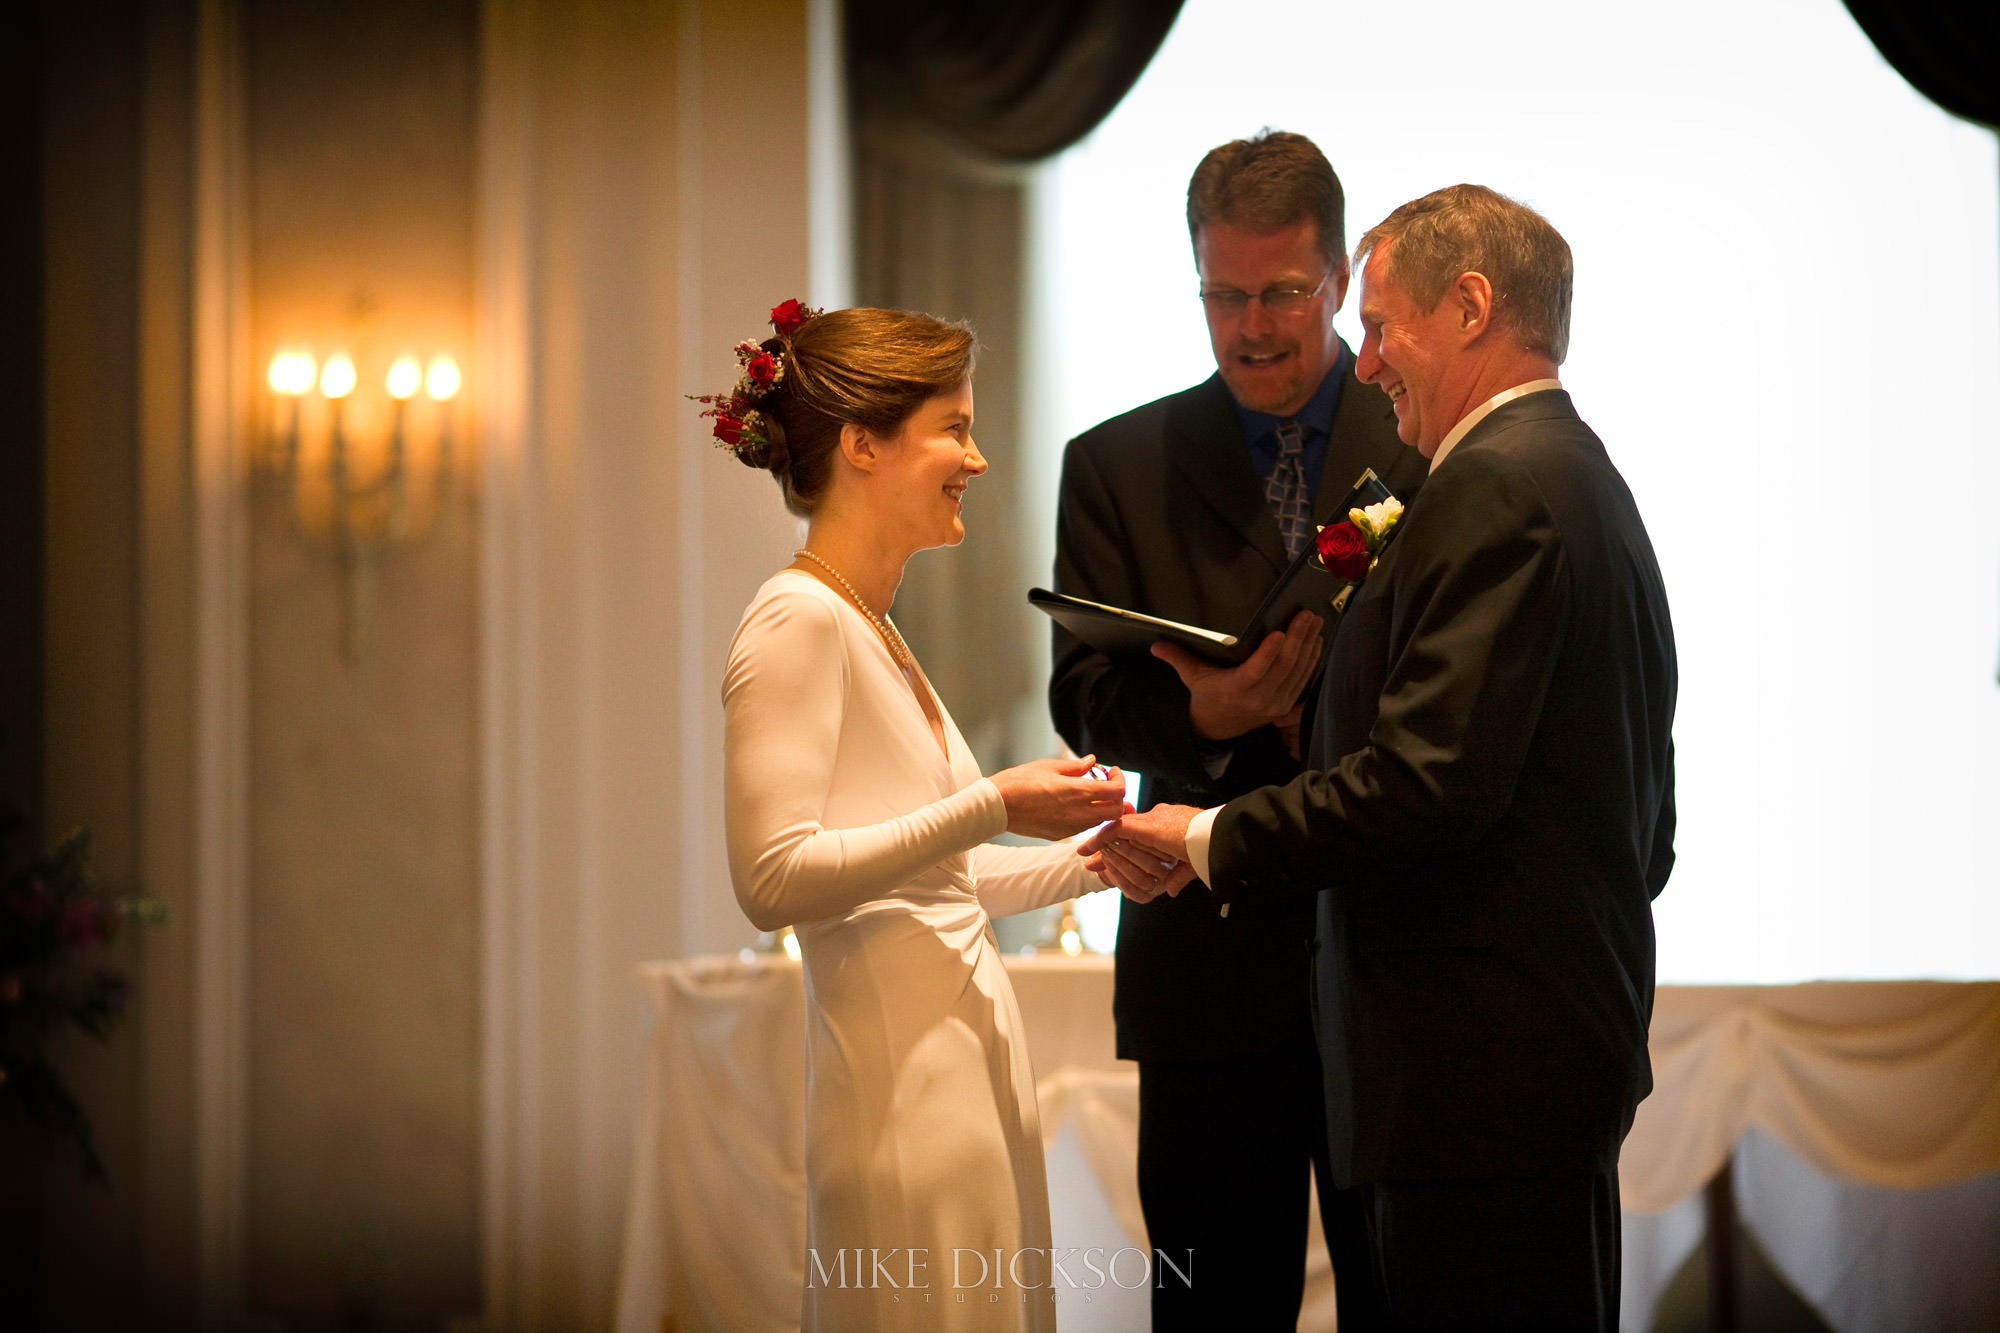 Ceremony, Chateau Laurier, Ontario, Ottawa, Wedding, © Mike Dickson